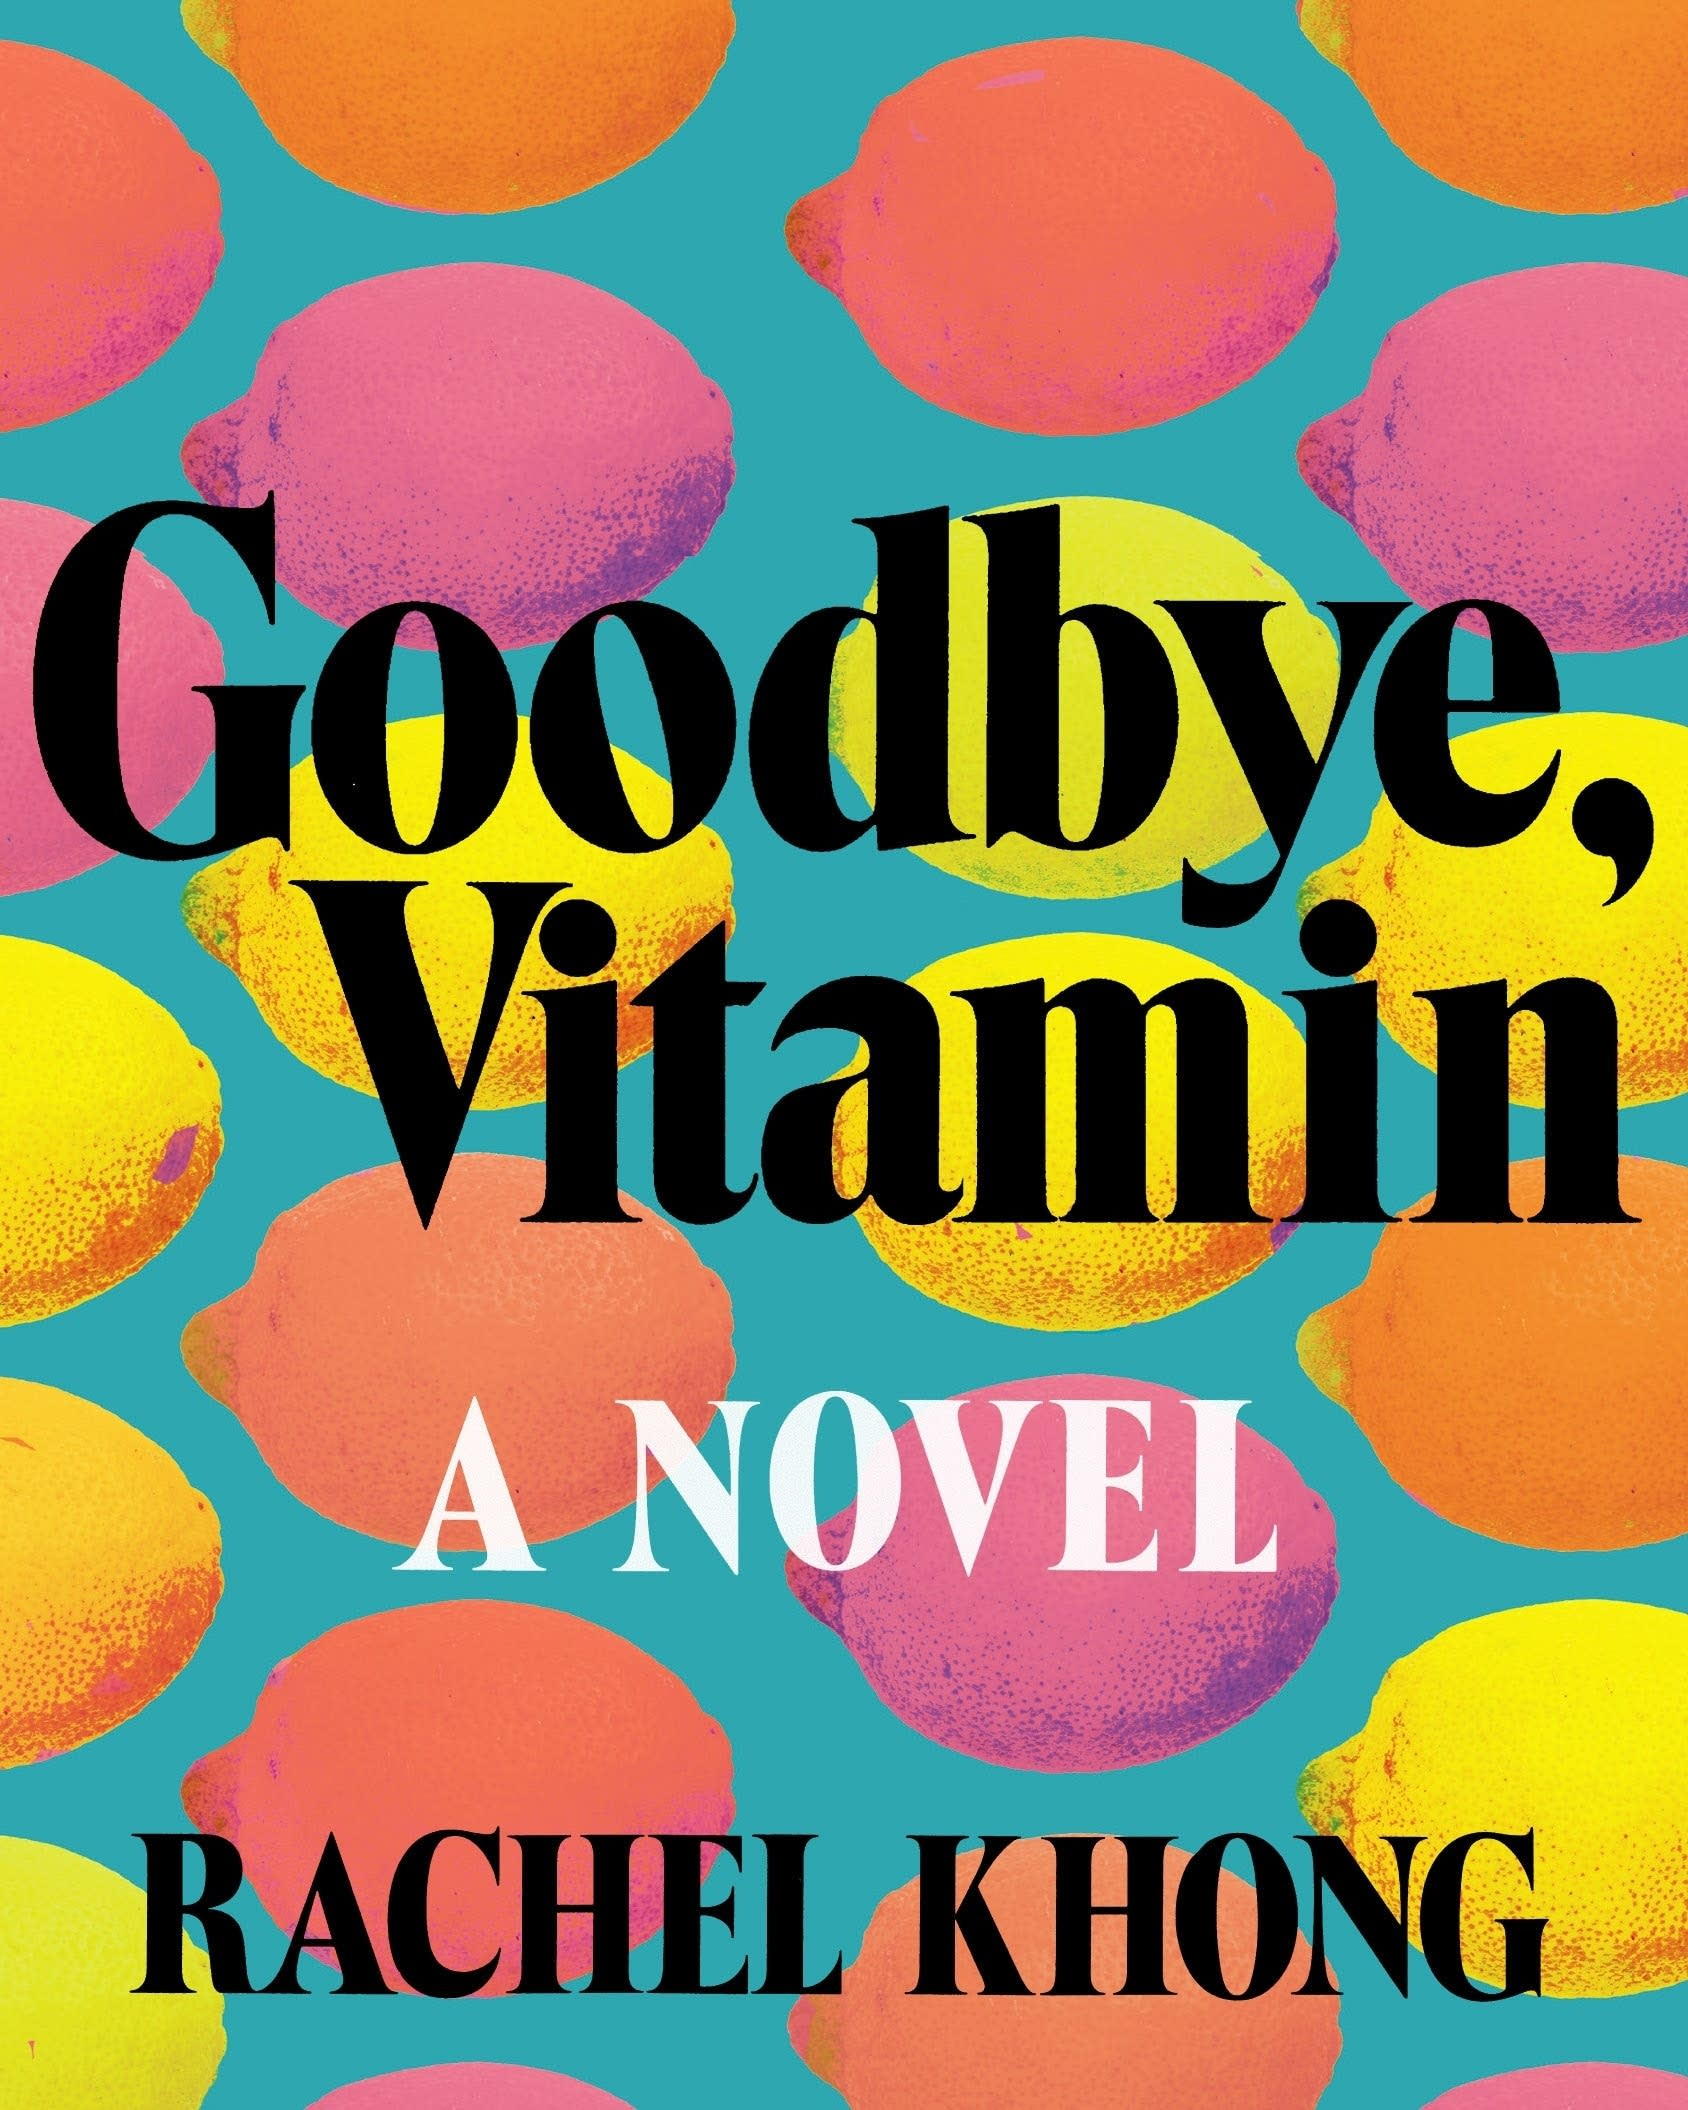 Rachel Khong's 'Goodbye Vitamin'